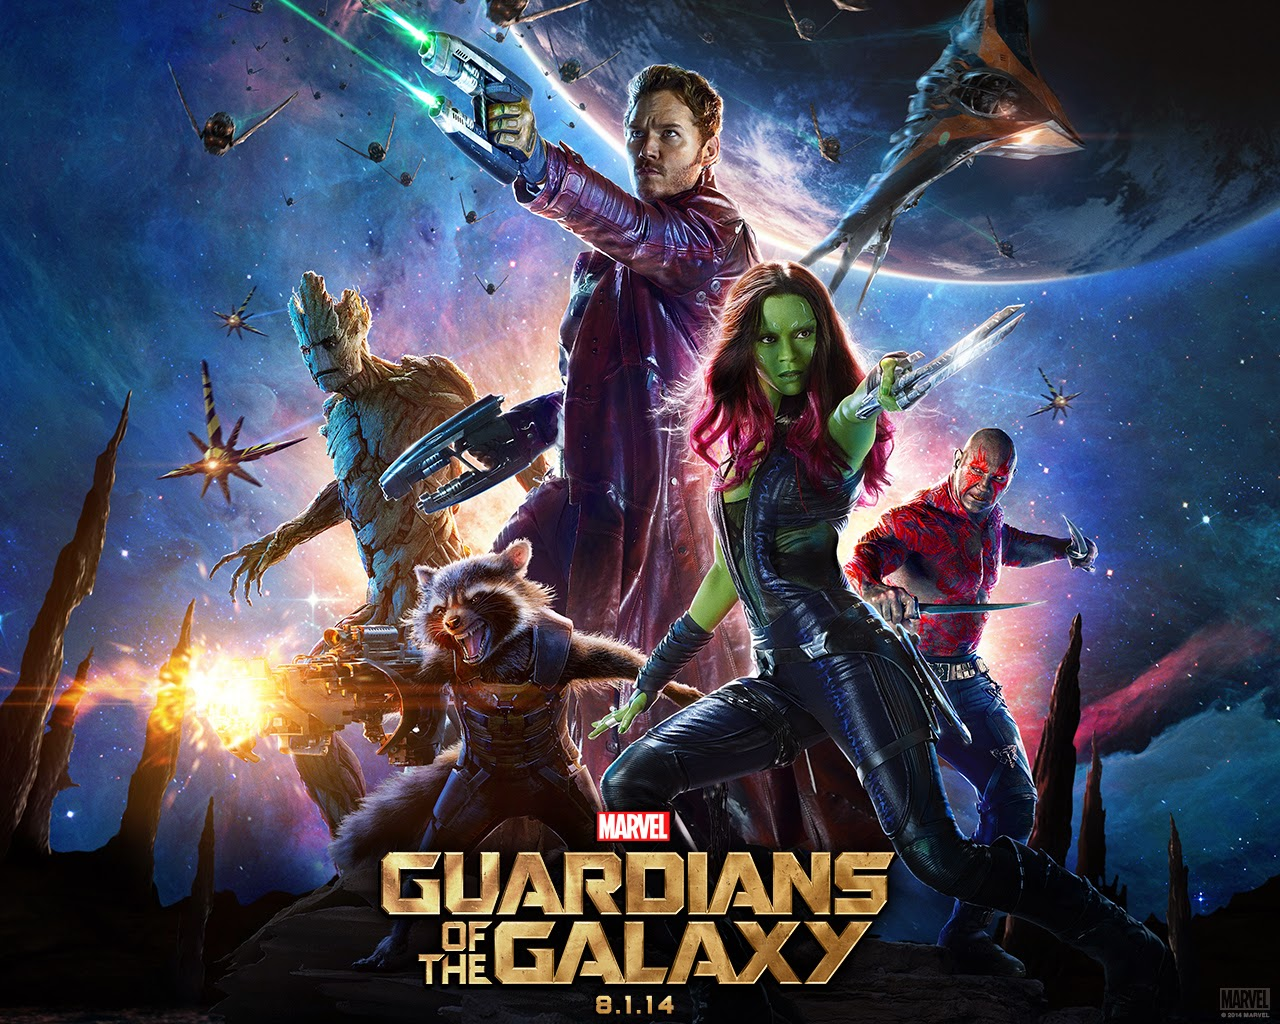 Four Word Movie Review: Marvel's Guardians of the Galaxy | iNeed a Playdate